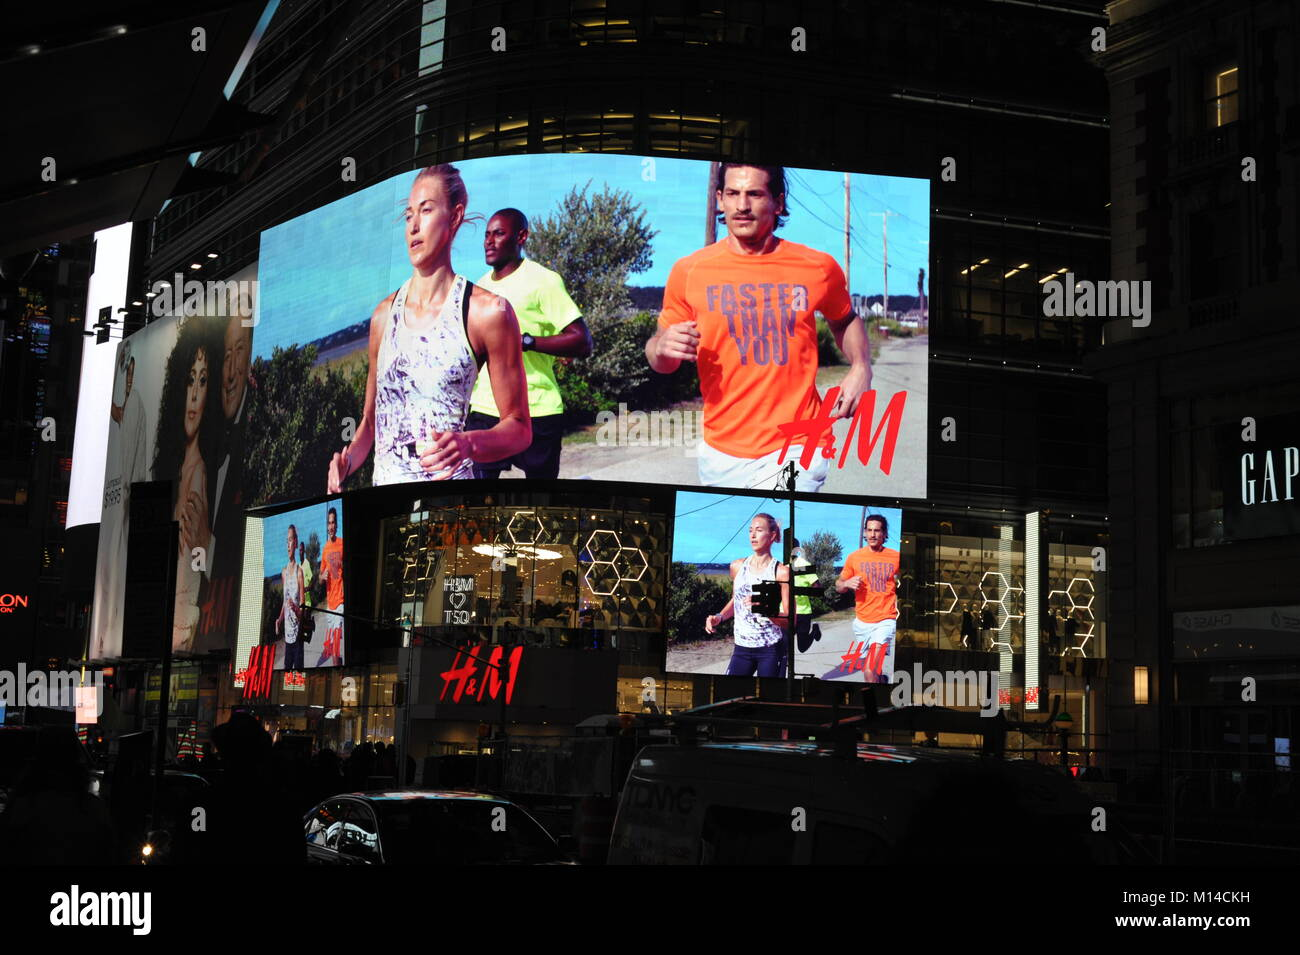 shiny media facade advertizing H&M on 5th avenue in New York City - Stock Image